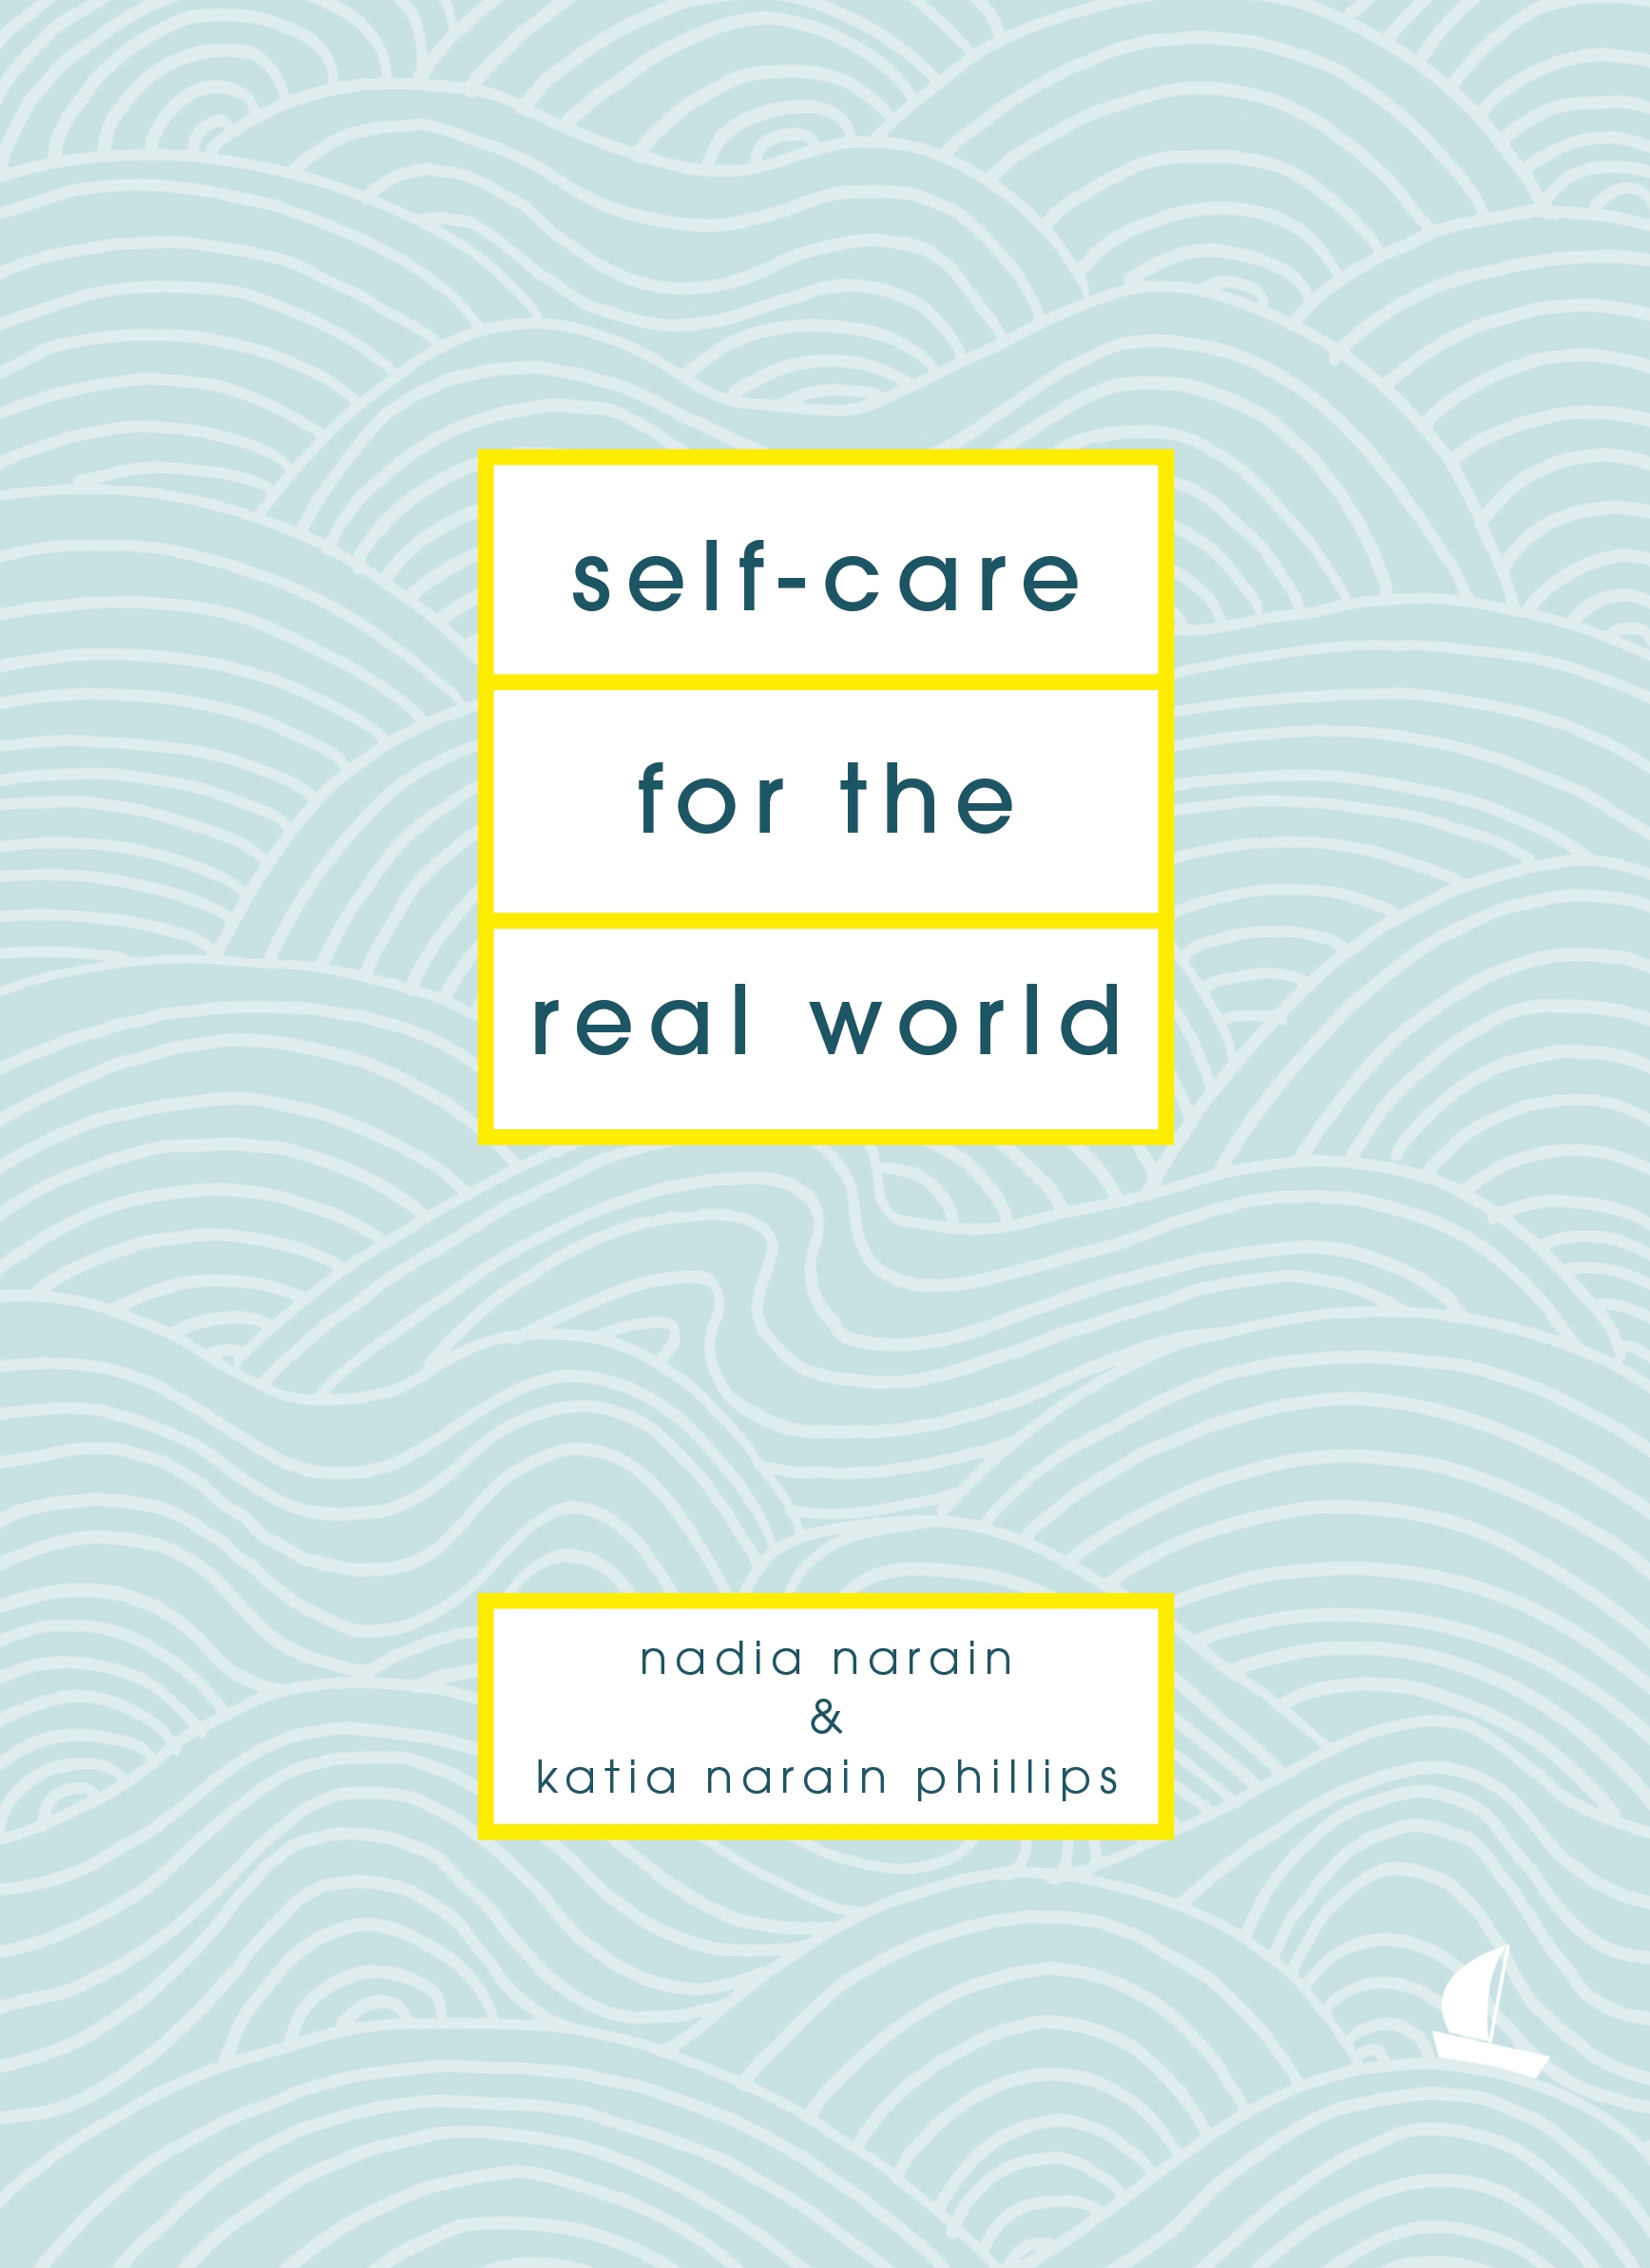 Self care for the real world by nadia narain penguin books australia hi res cover solutioingenieria Gallery